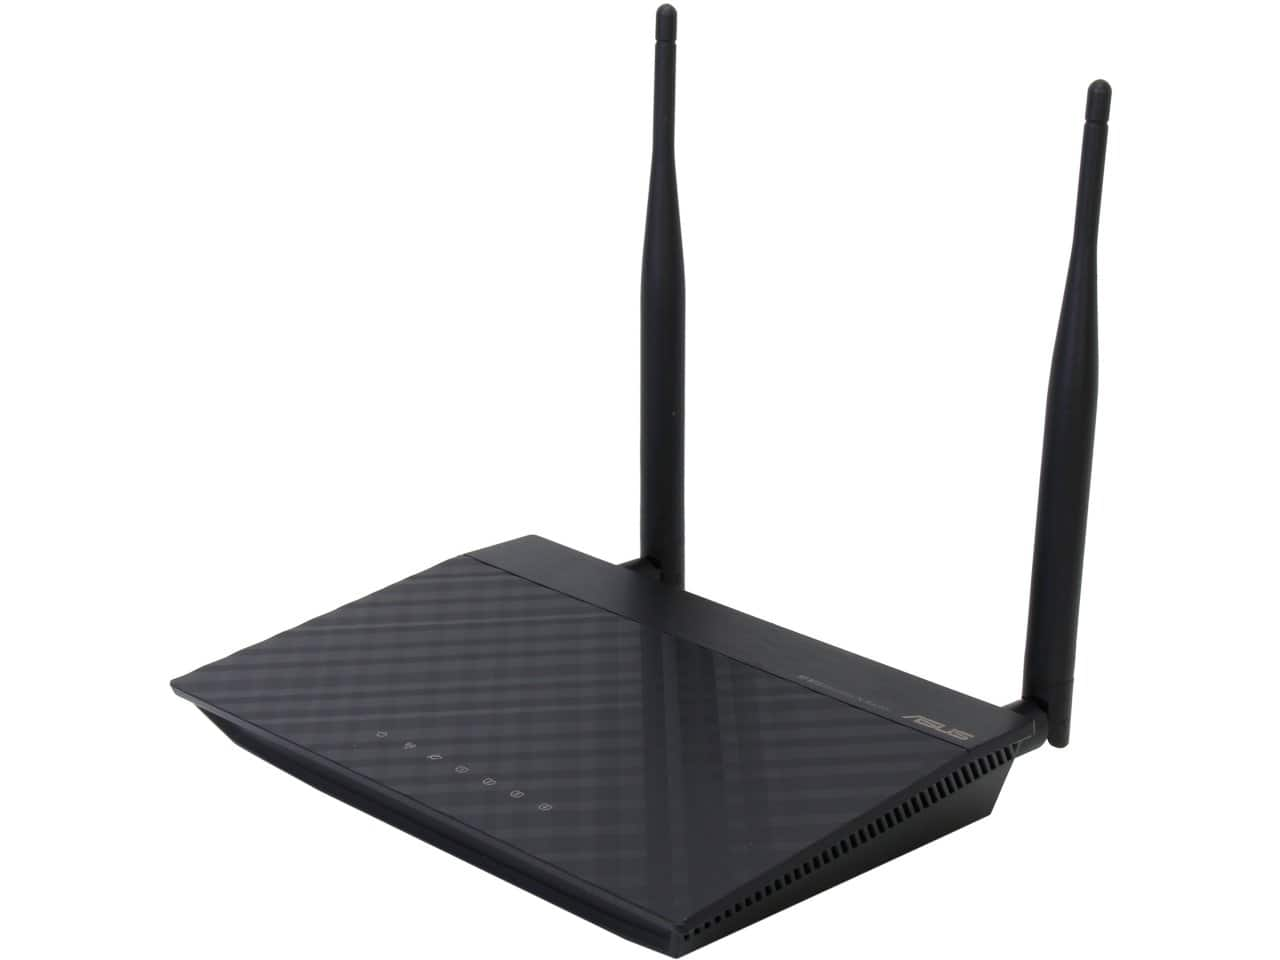 Asus RT-N12/D1 N300 3-in-1 Wireless Router/AP/Range Extender for $9.99 AR, TP-LINK Archer T6E AC1300 Wireless Dual Band PCI Express Adapter for $39.99 AR & More @ Newegg.com